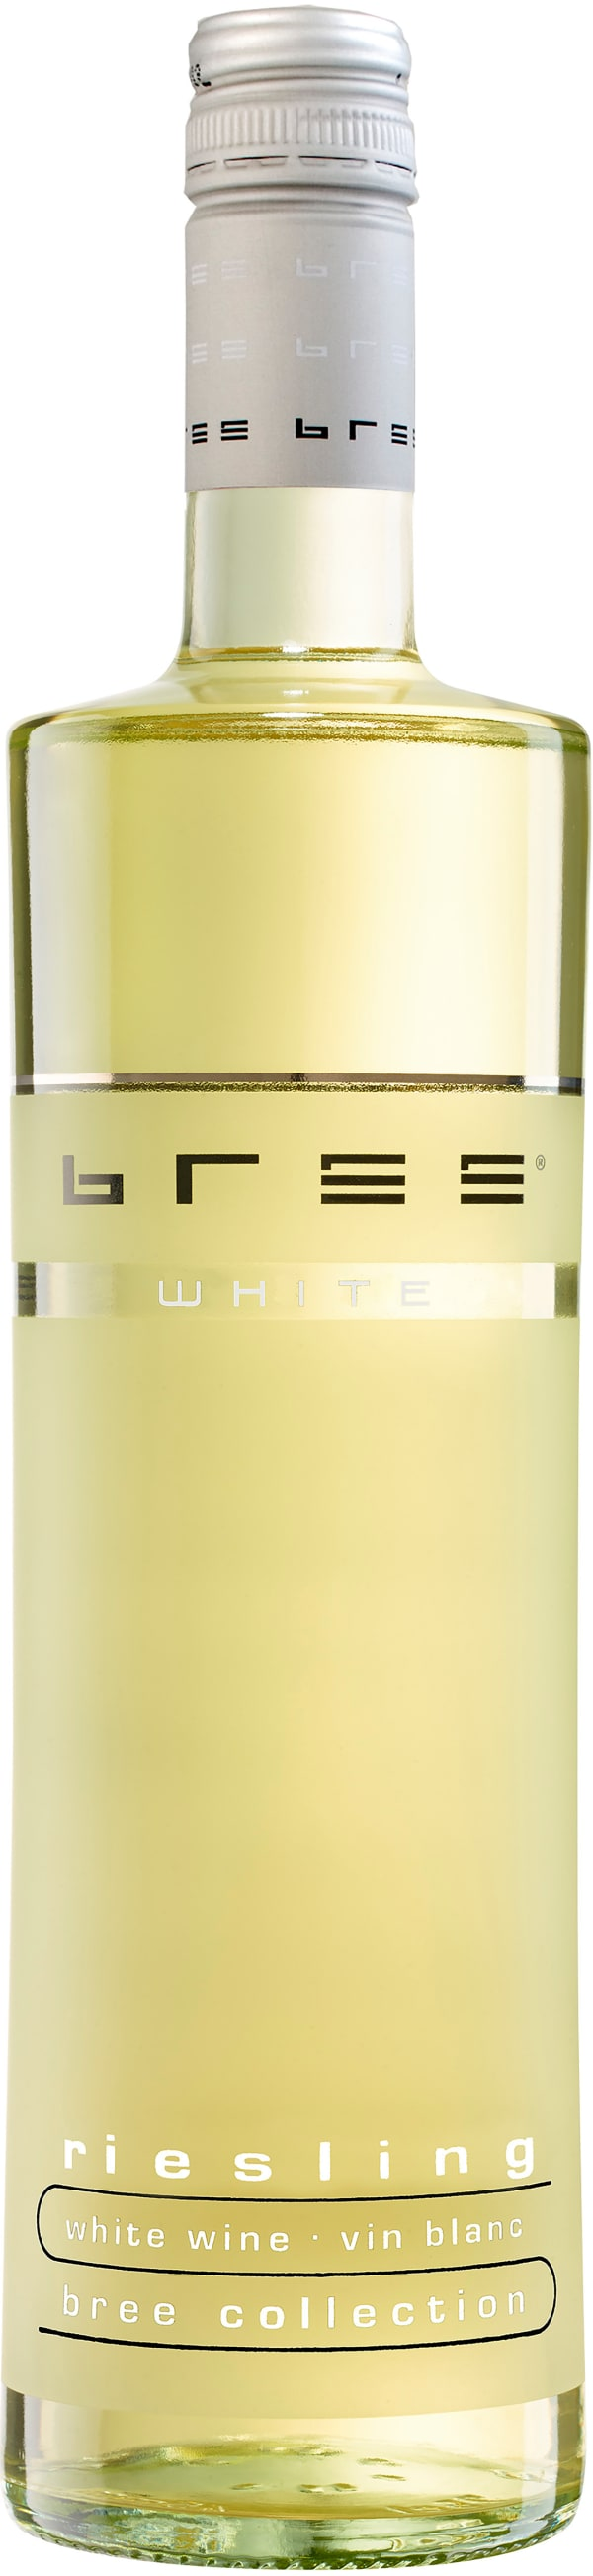 Bree White Riesling 2020